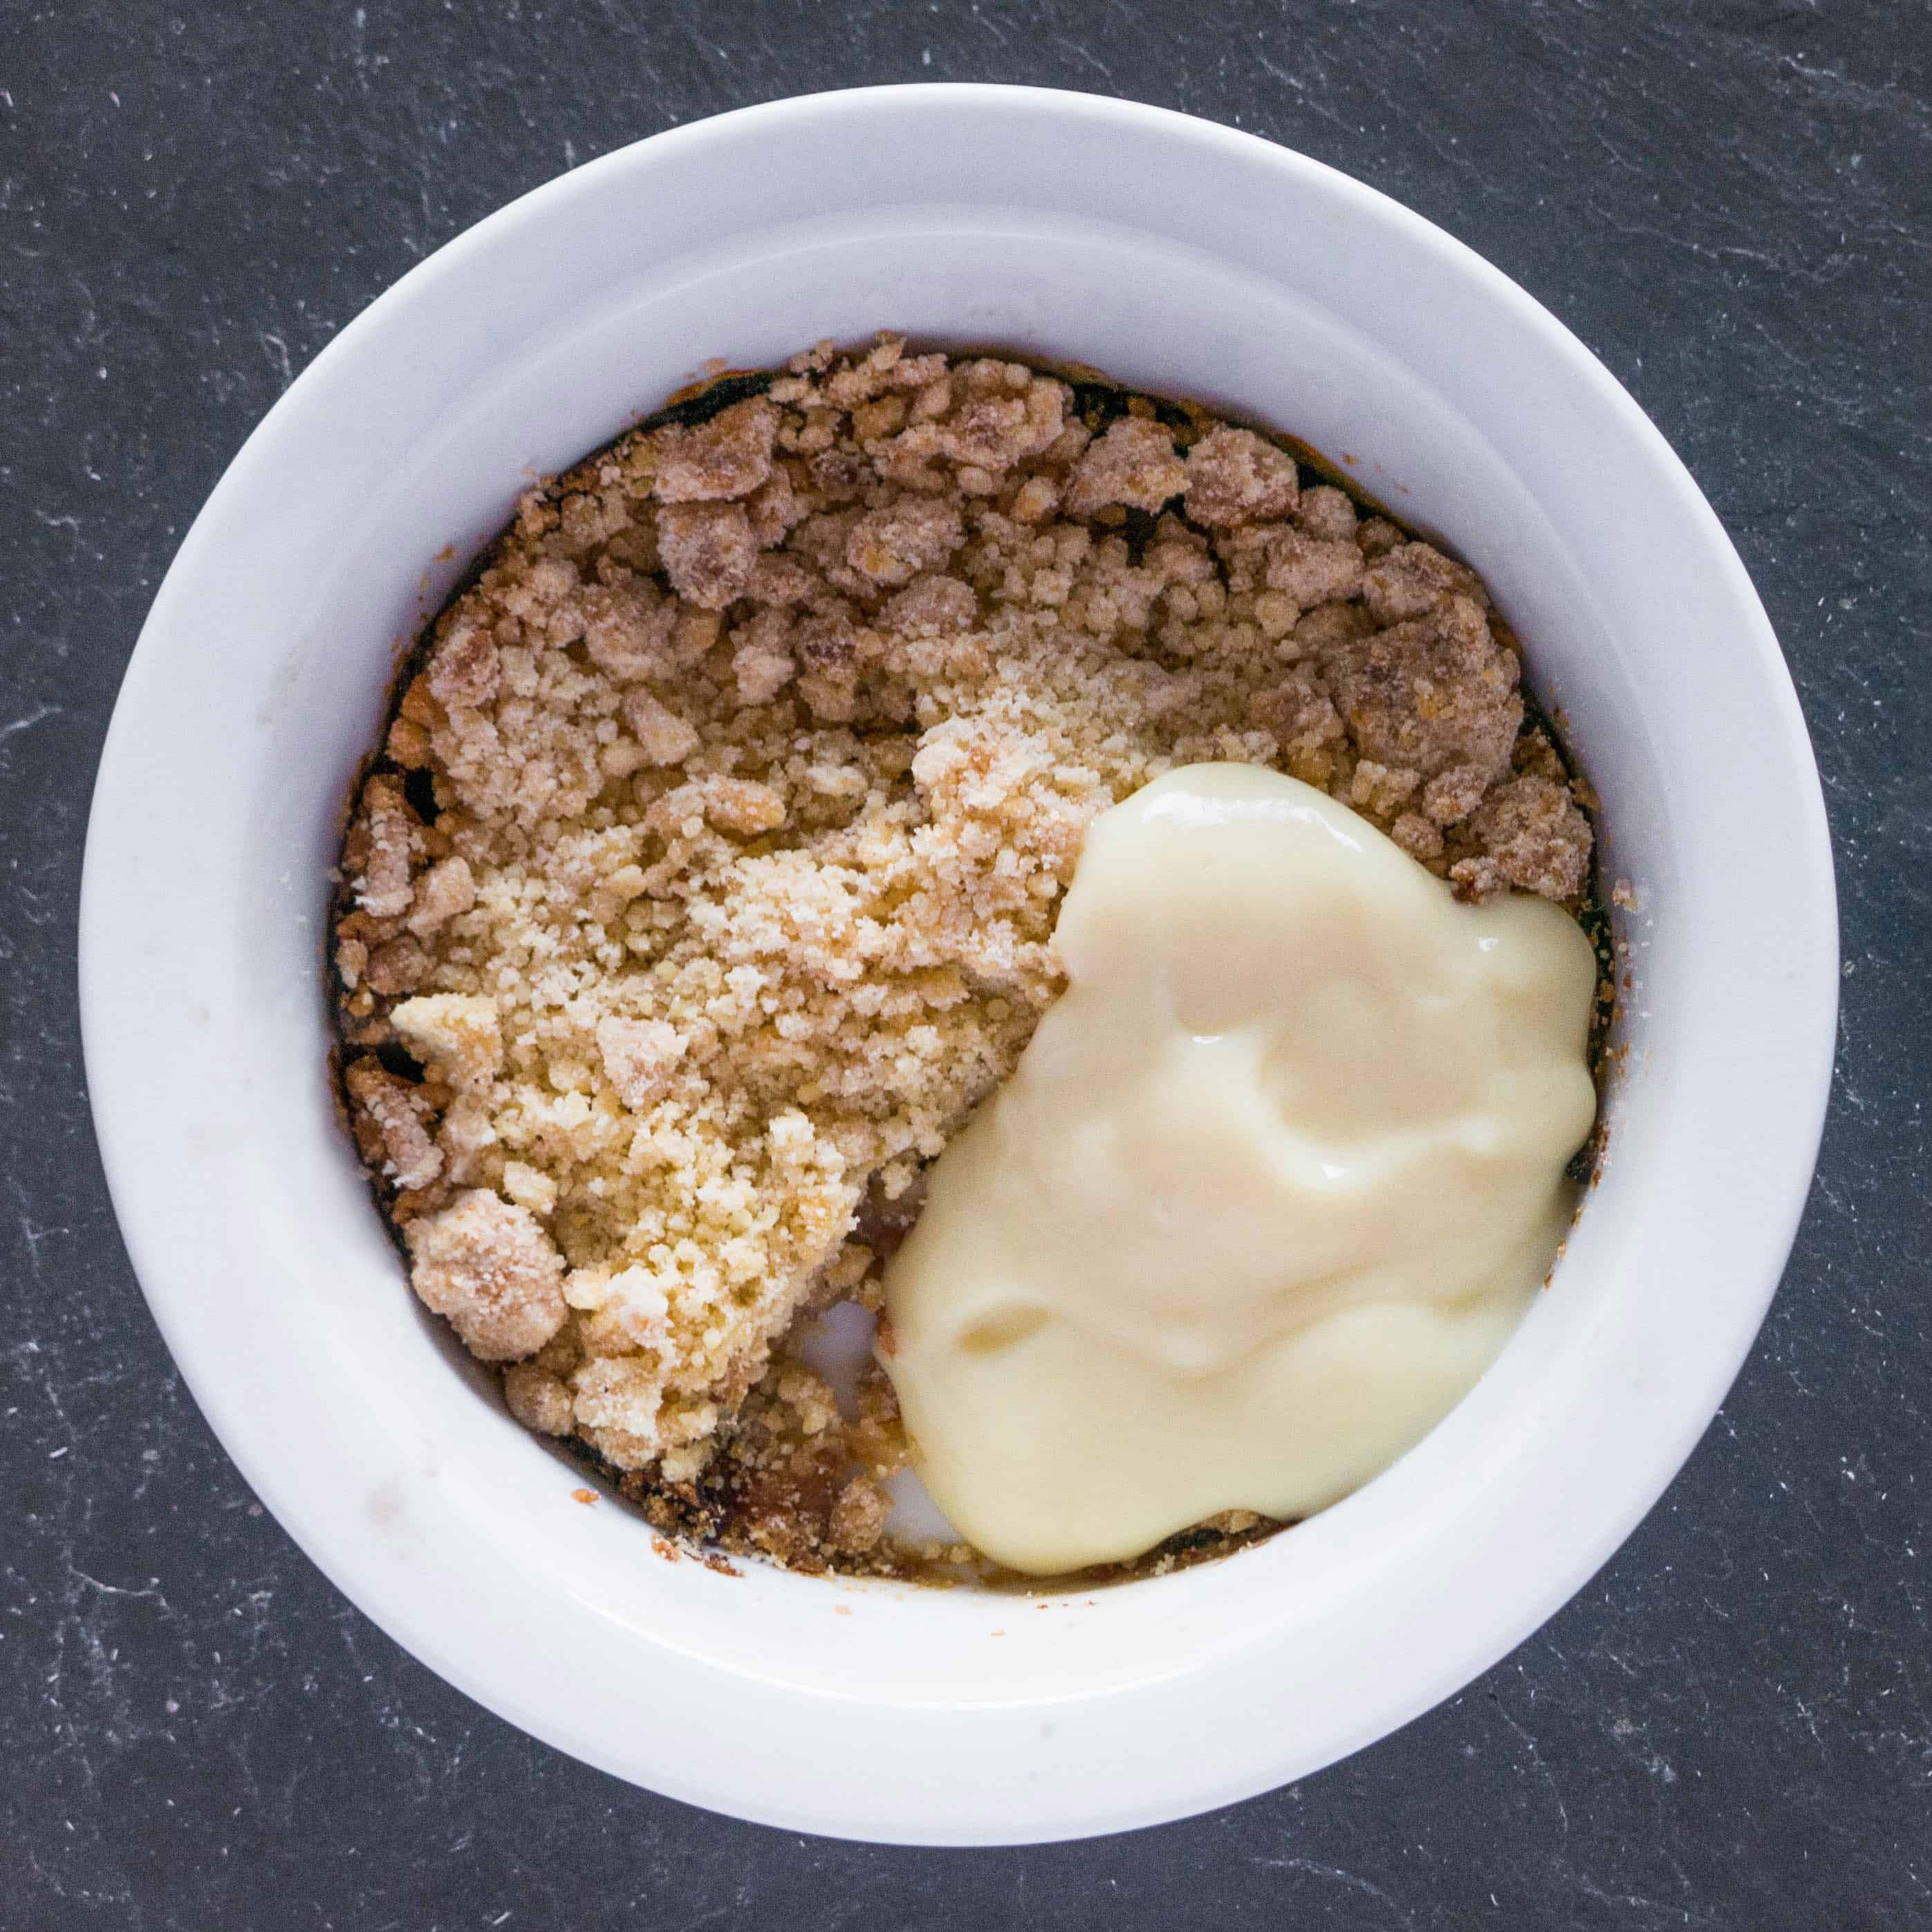 Gluten free, vegan, Bramley apple and quince crumble with vegan custard. Ready to eat.